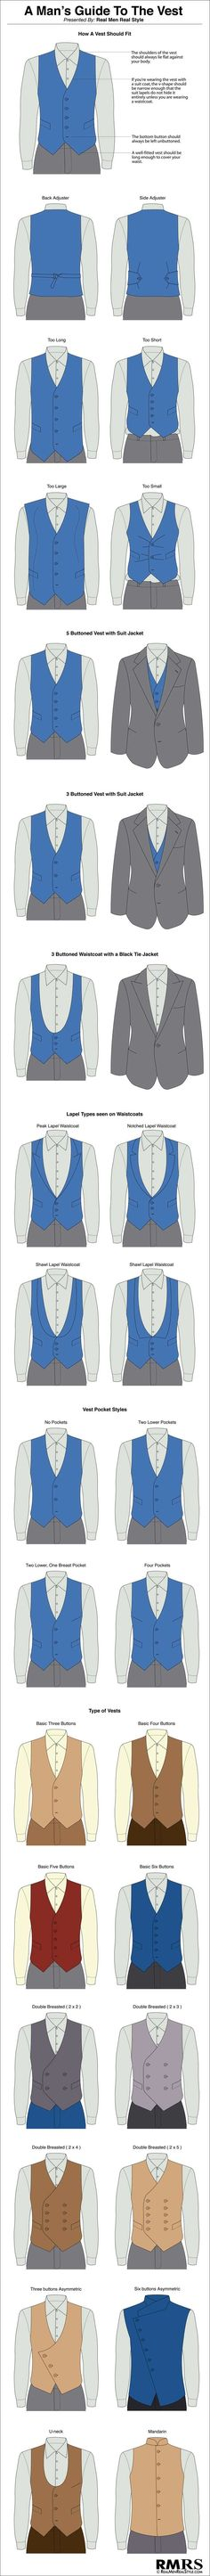 A Mans Guide To The Vest #MensFashion #Style #Infographic